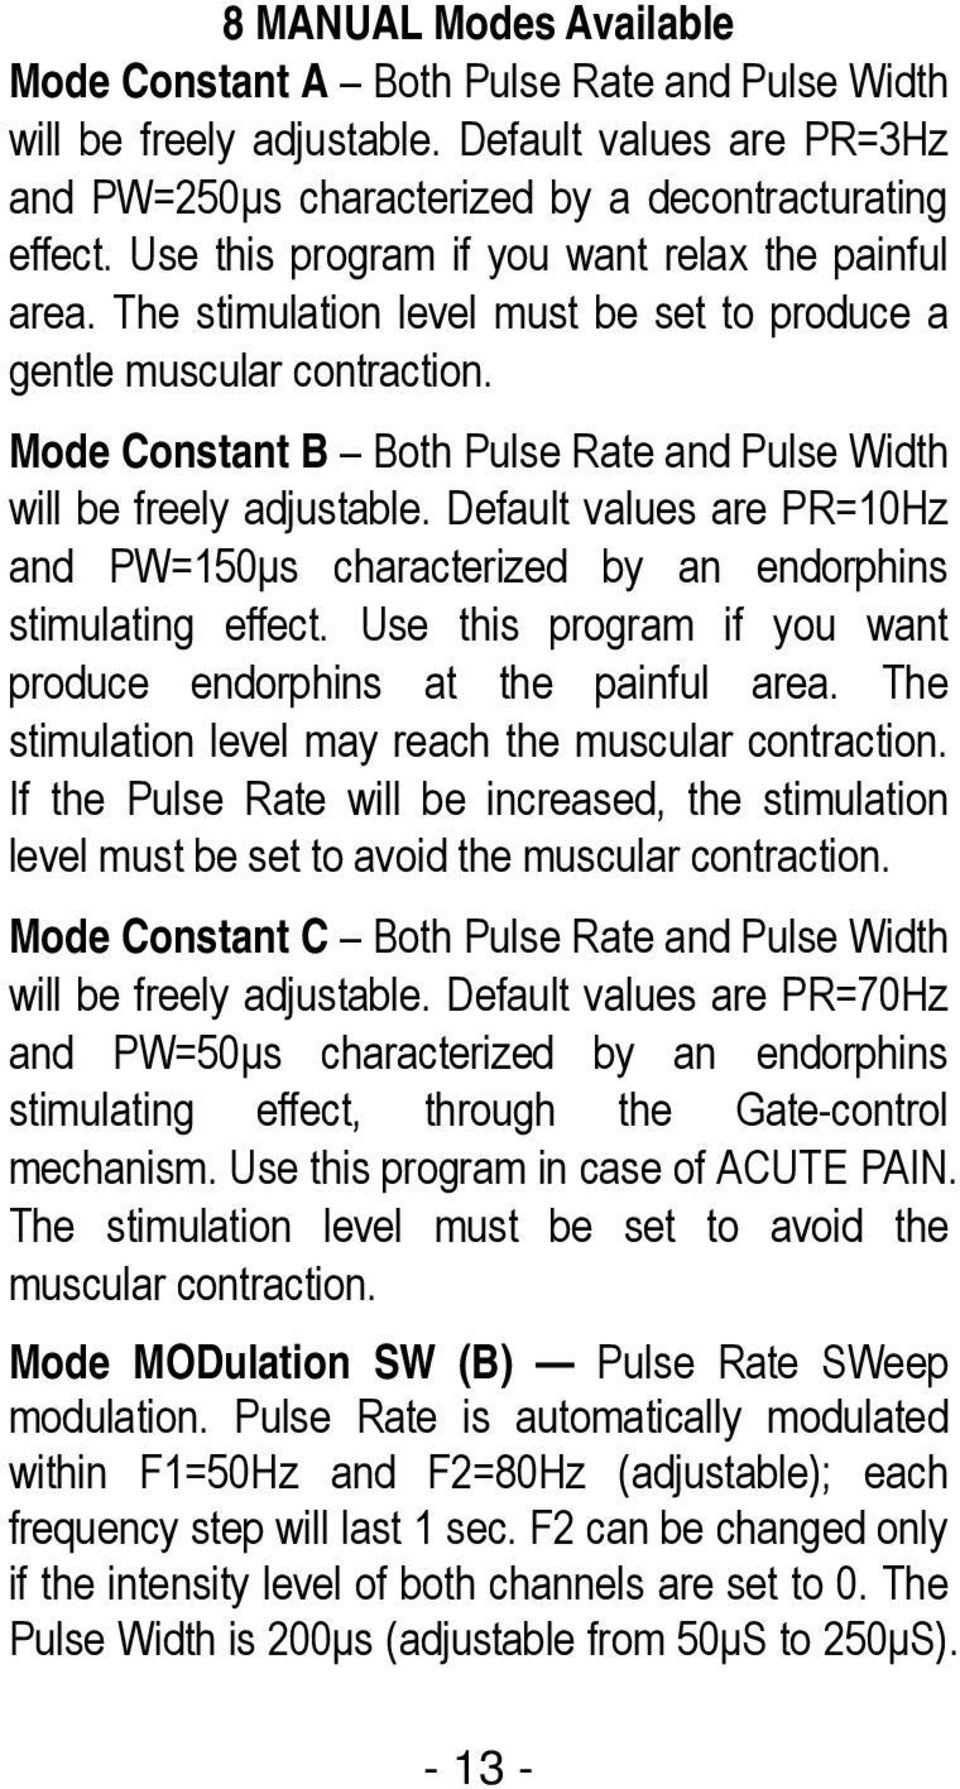 Mode Constant B Both Pulse Rate and Pulse Width will be freely adjustable. Default values are PR=10Hz and PW=150μs characterized by an endorphins stimulating effect.